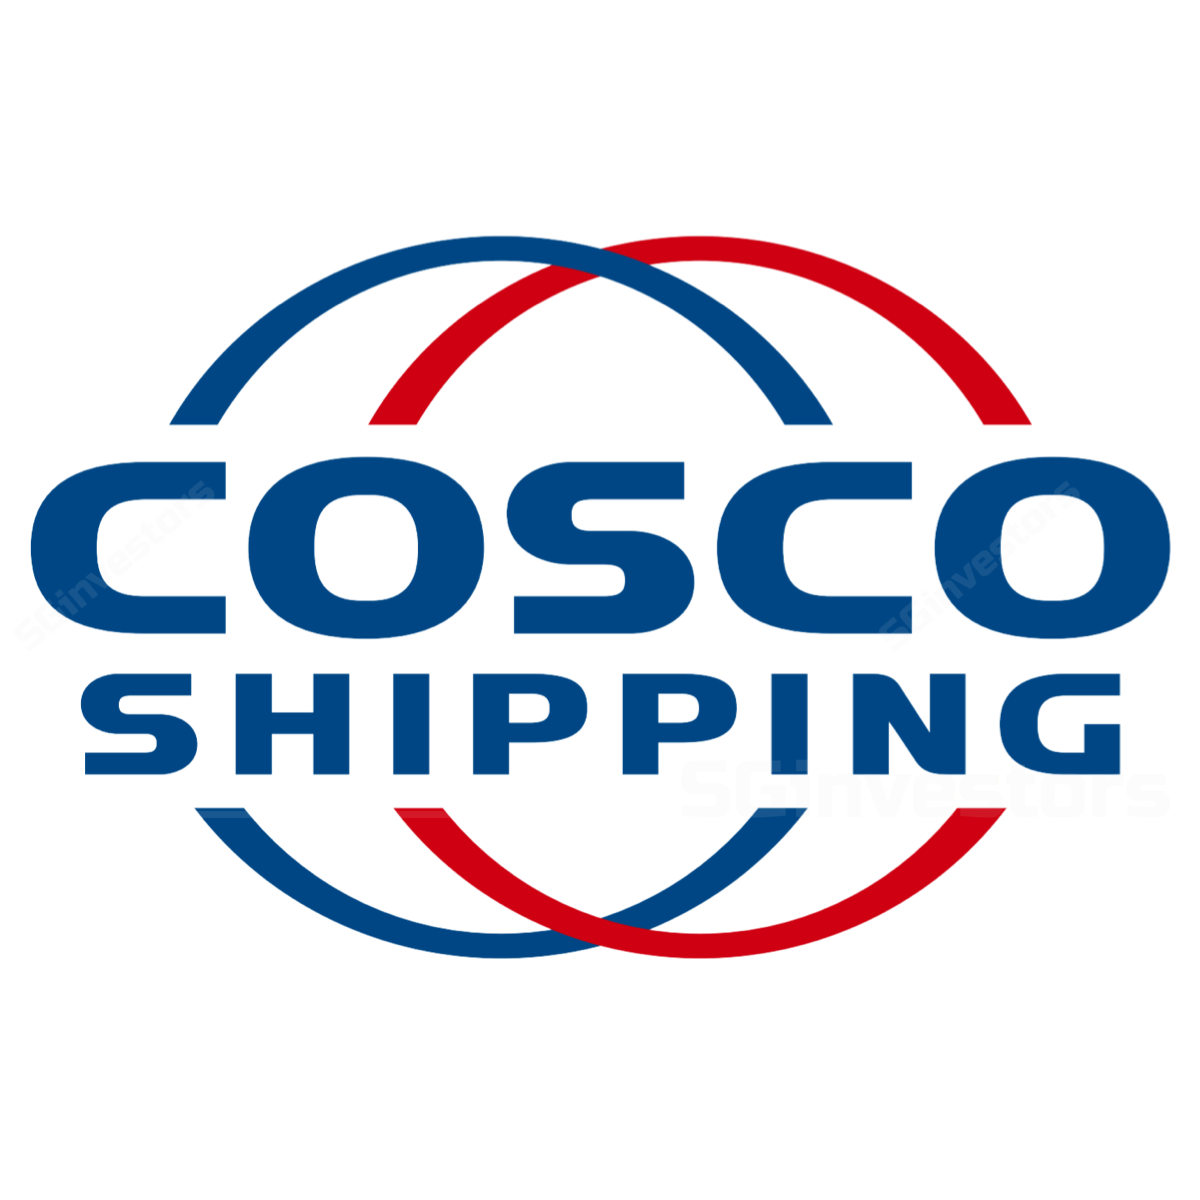 Cosco Shipping Int'l (Spore) - DBS Vickers 2017-08-08: Hint Of Future Direction?